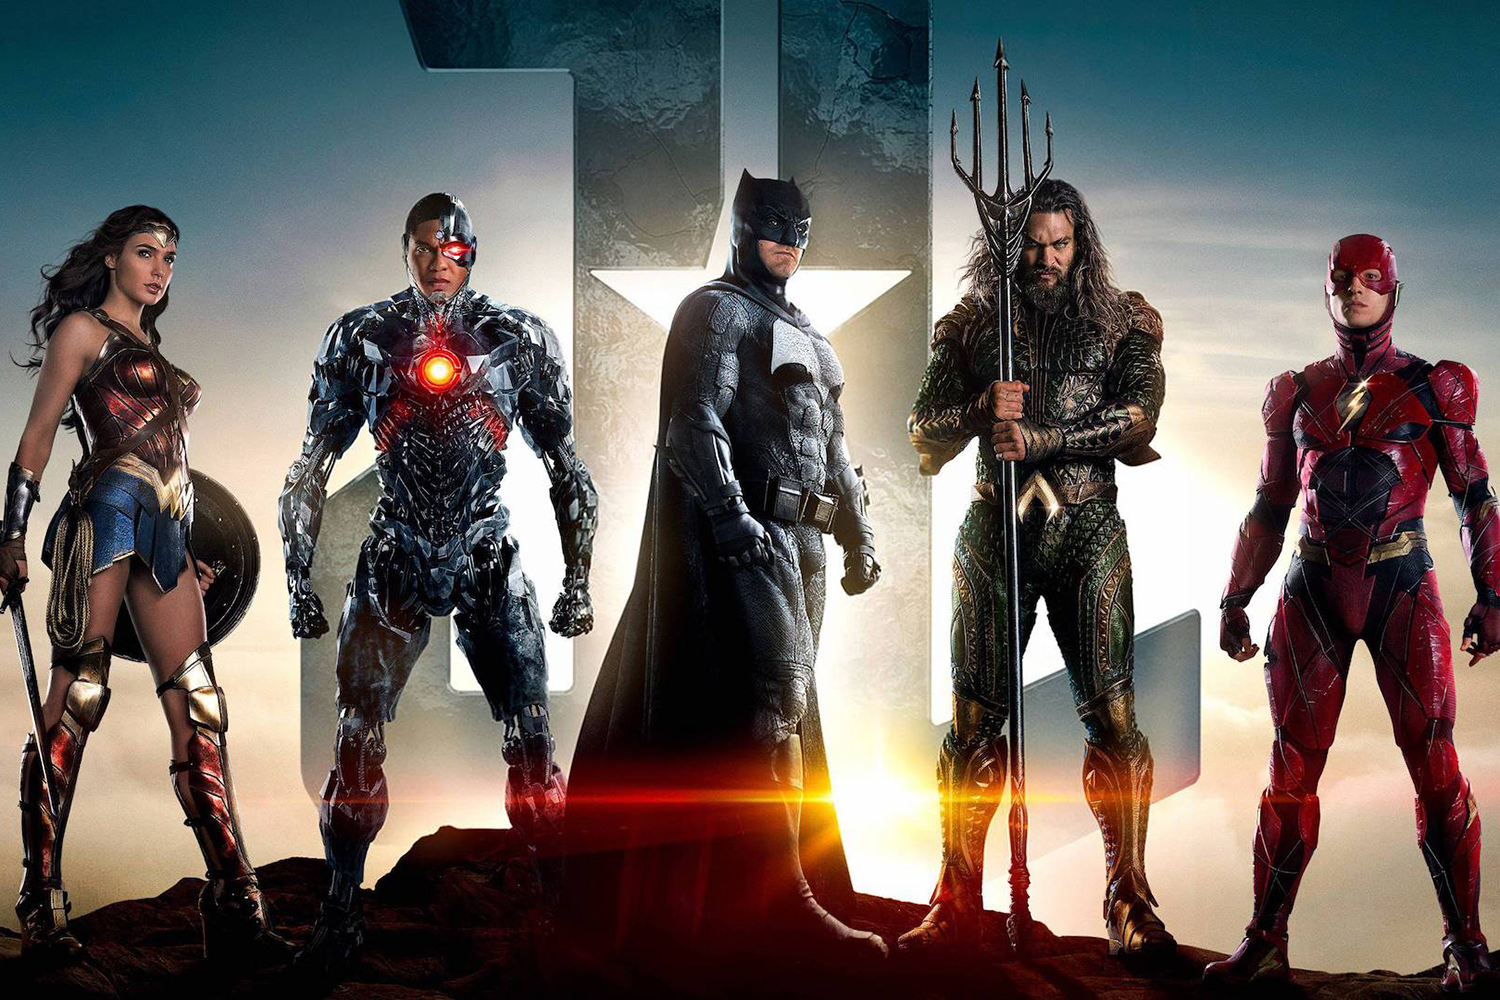 Justice league is an example of Hollywood's worst